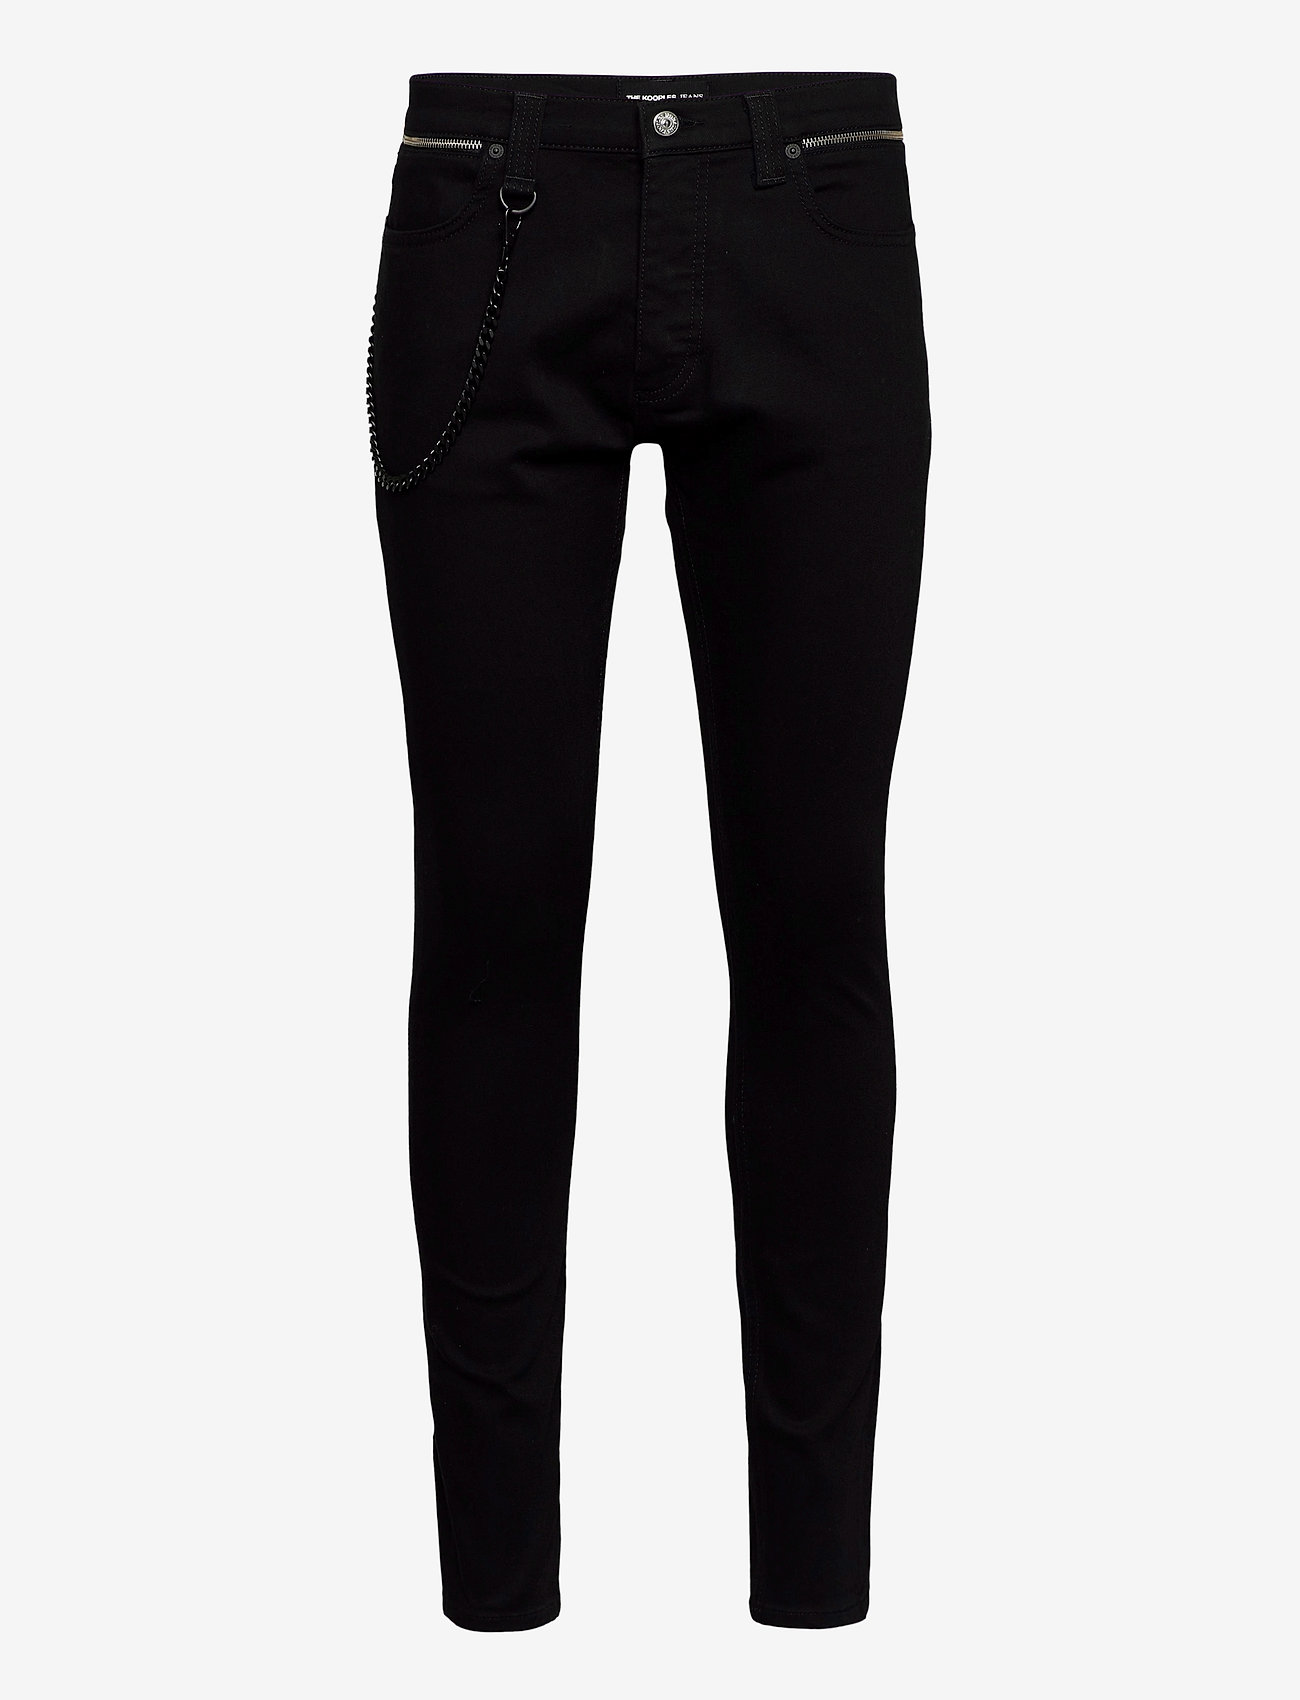 The Kooples - JEAN - slim jeans - black - 0